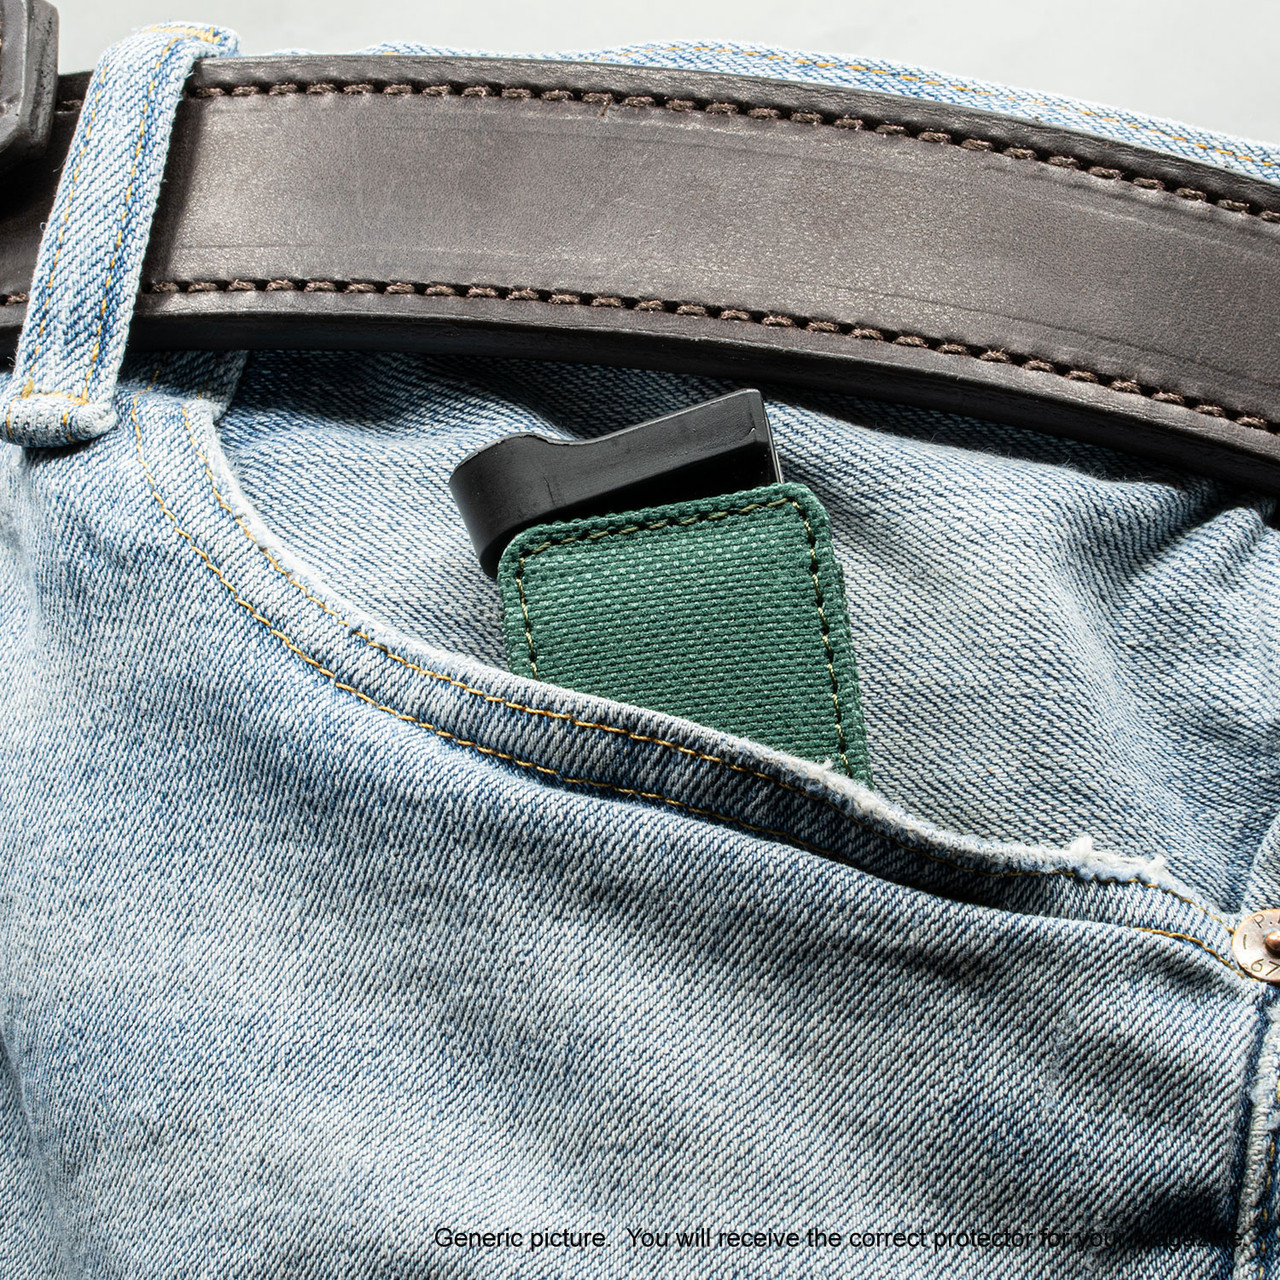 CZ 75D Compact Green Covert Magazine Pocket Protector